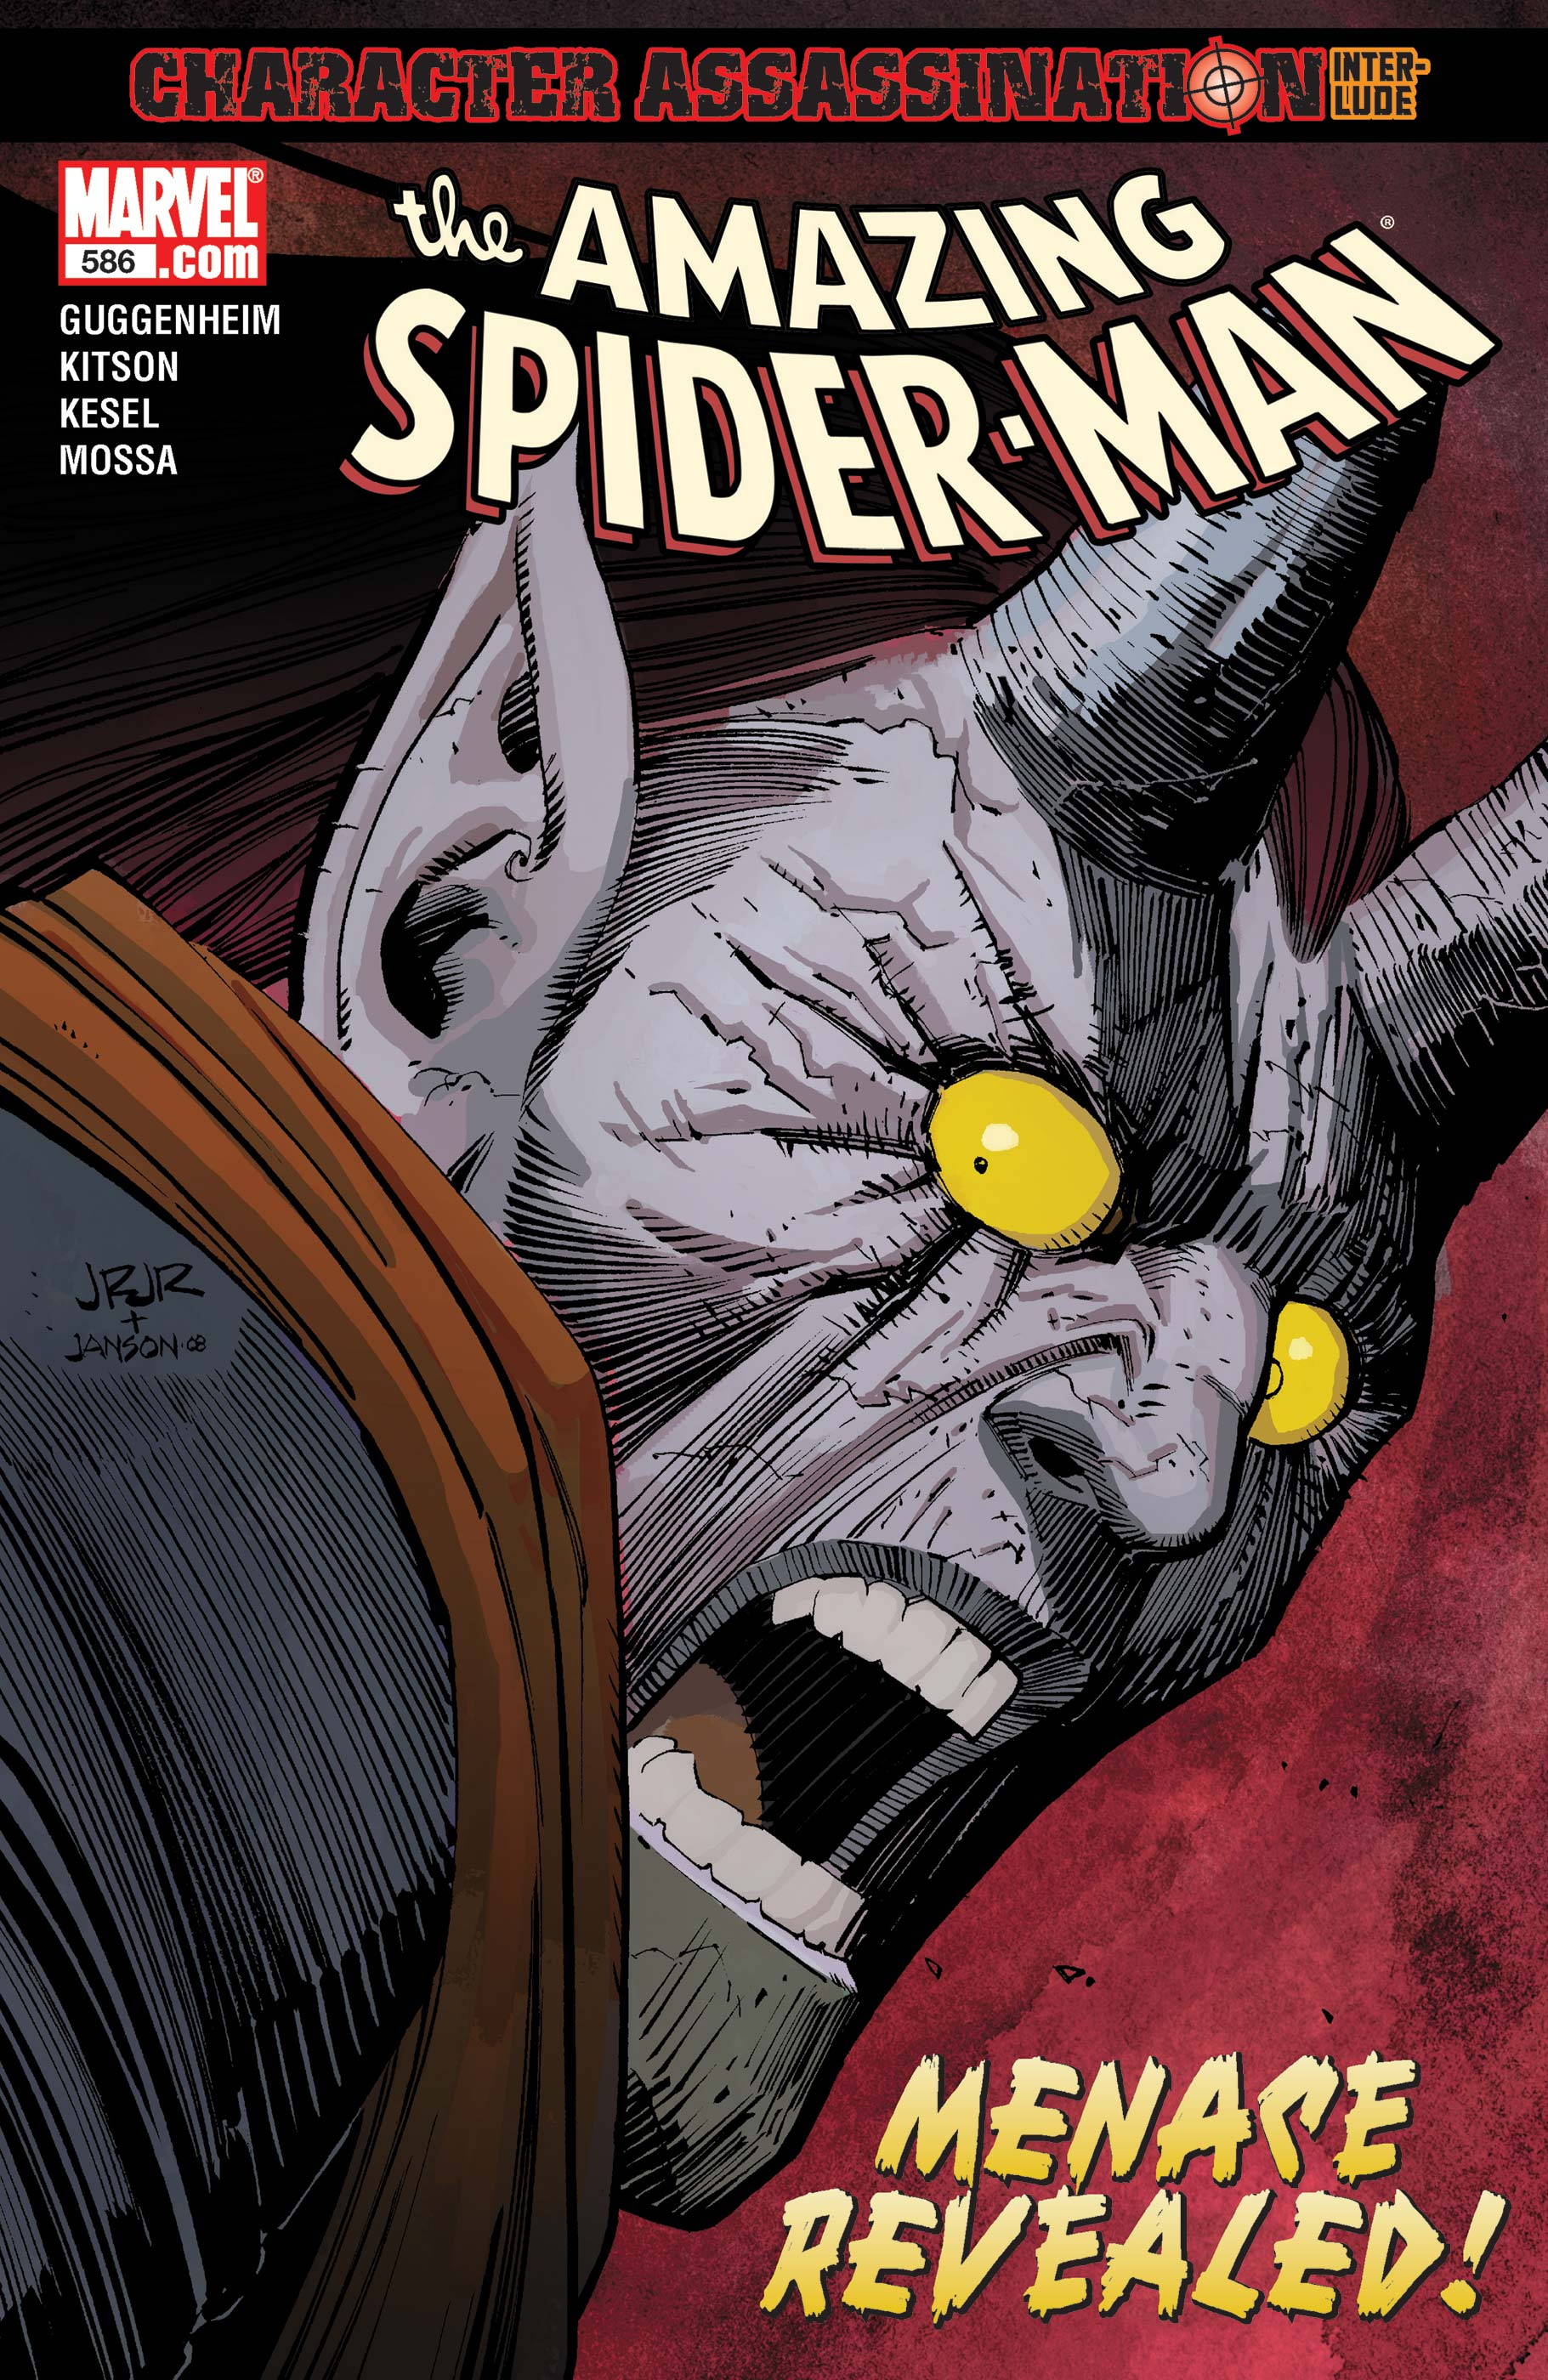 Amazing Spider-Man (1999) #586